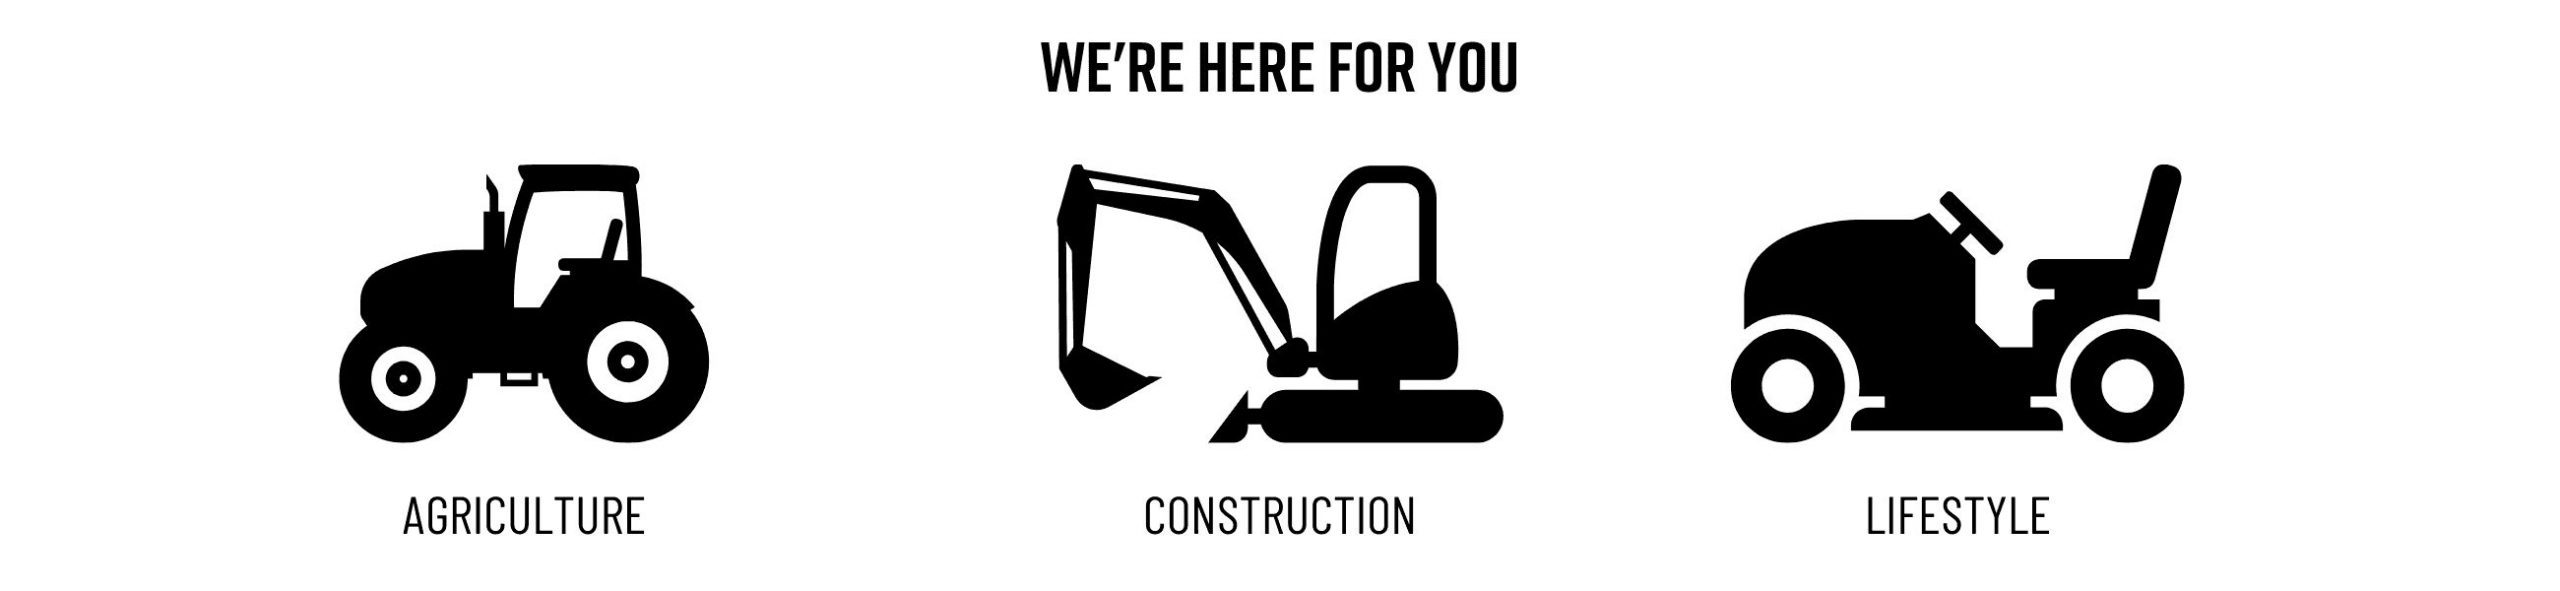 Agriculture, Construction, Lifestyle Equipment Icons